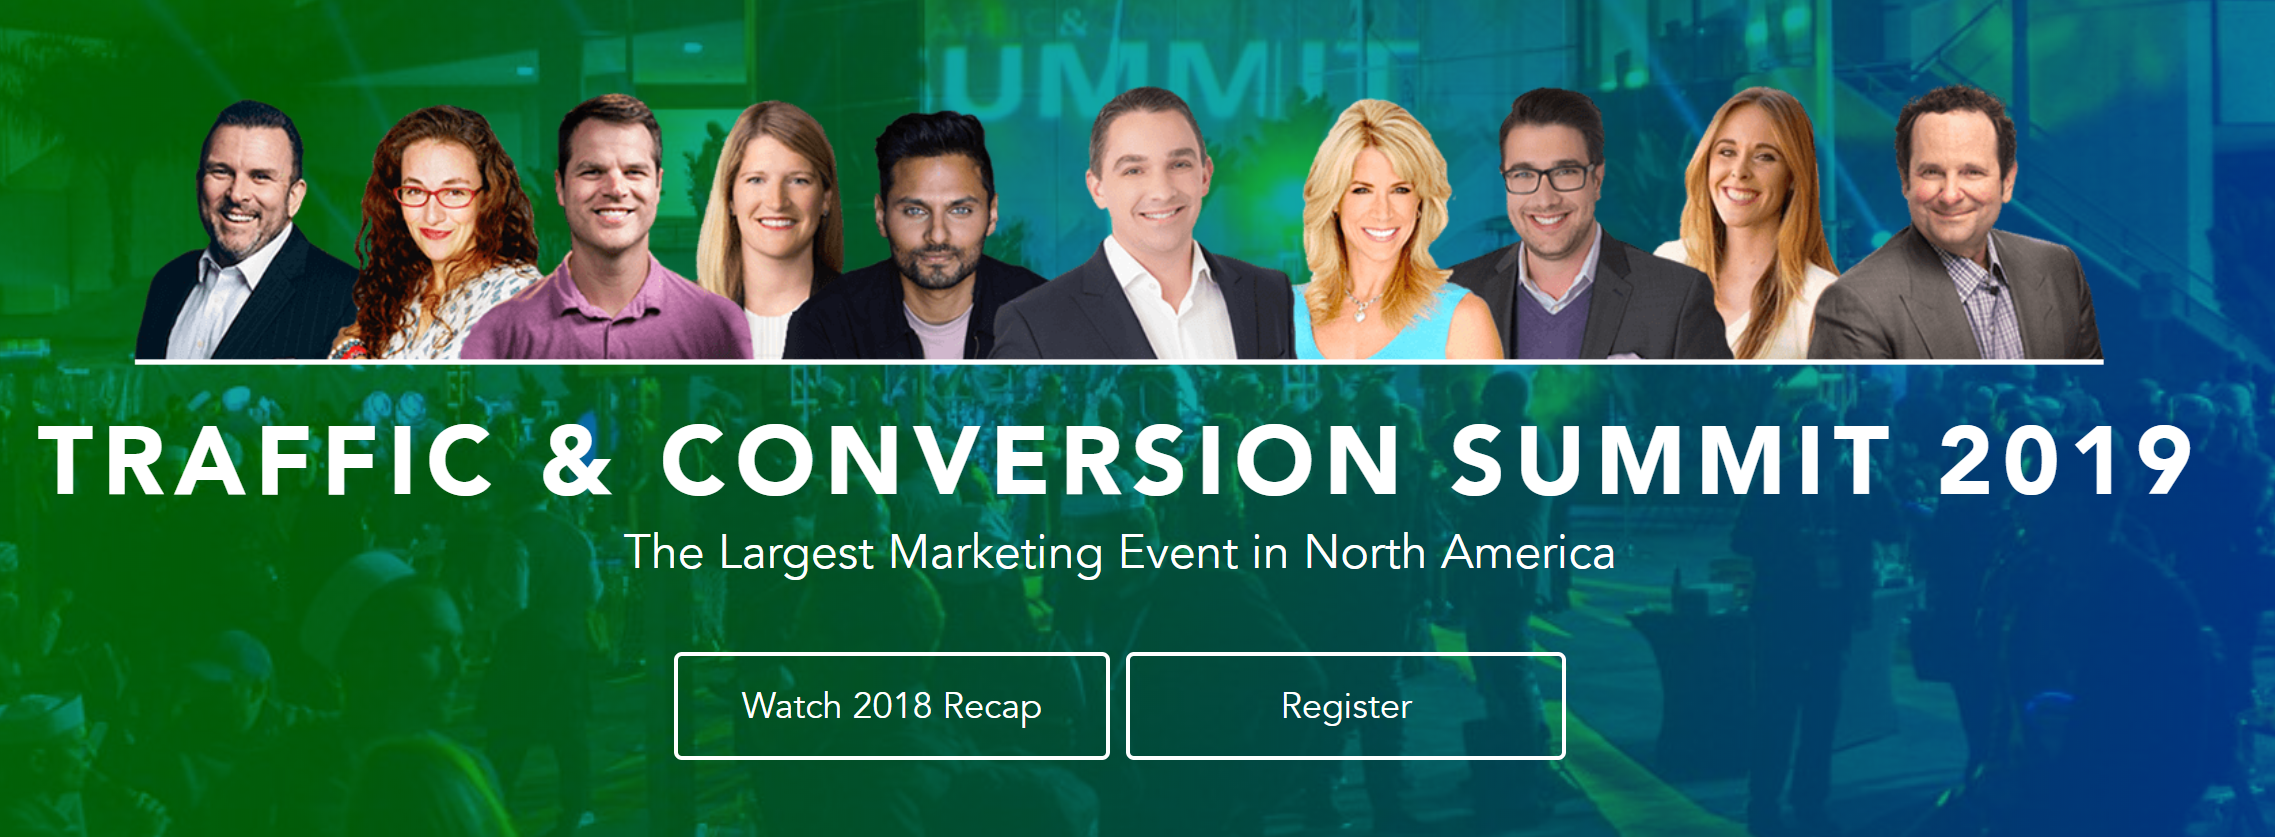 traffic and conversion summit 2019